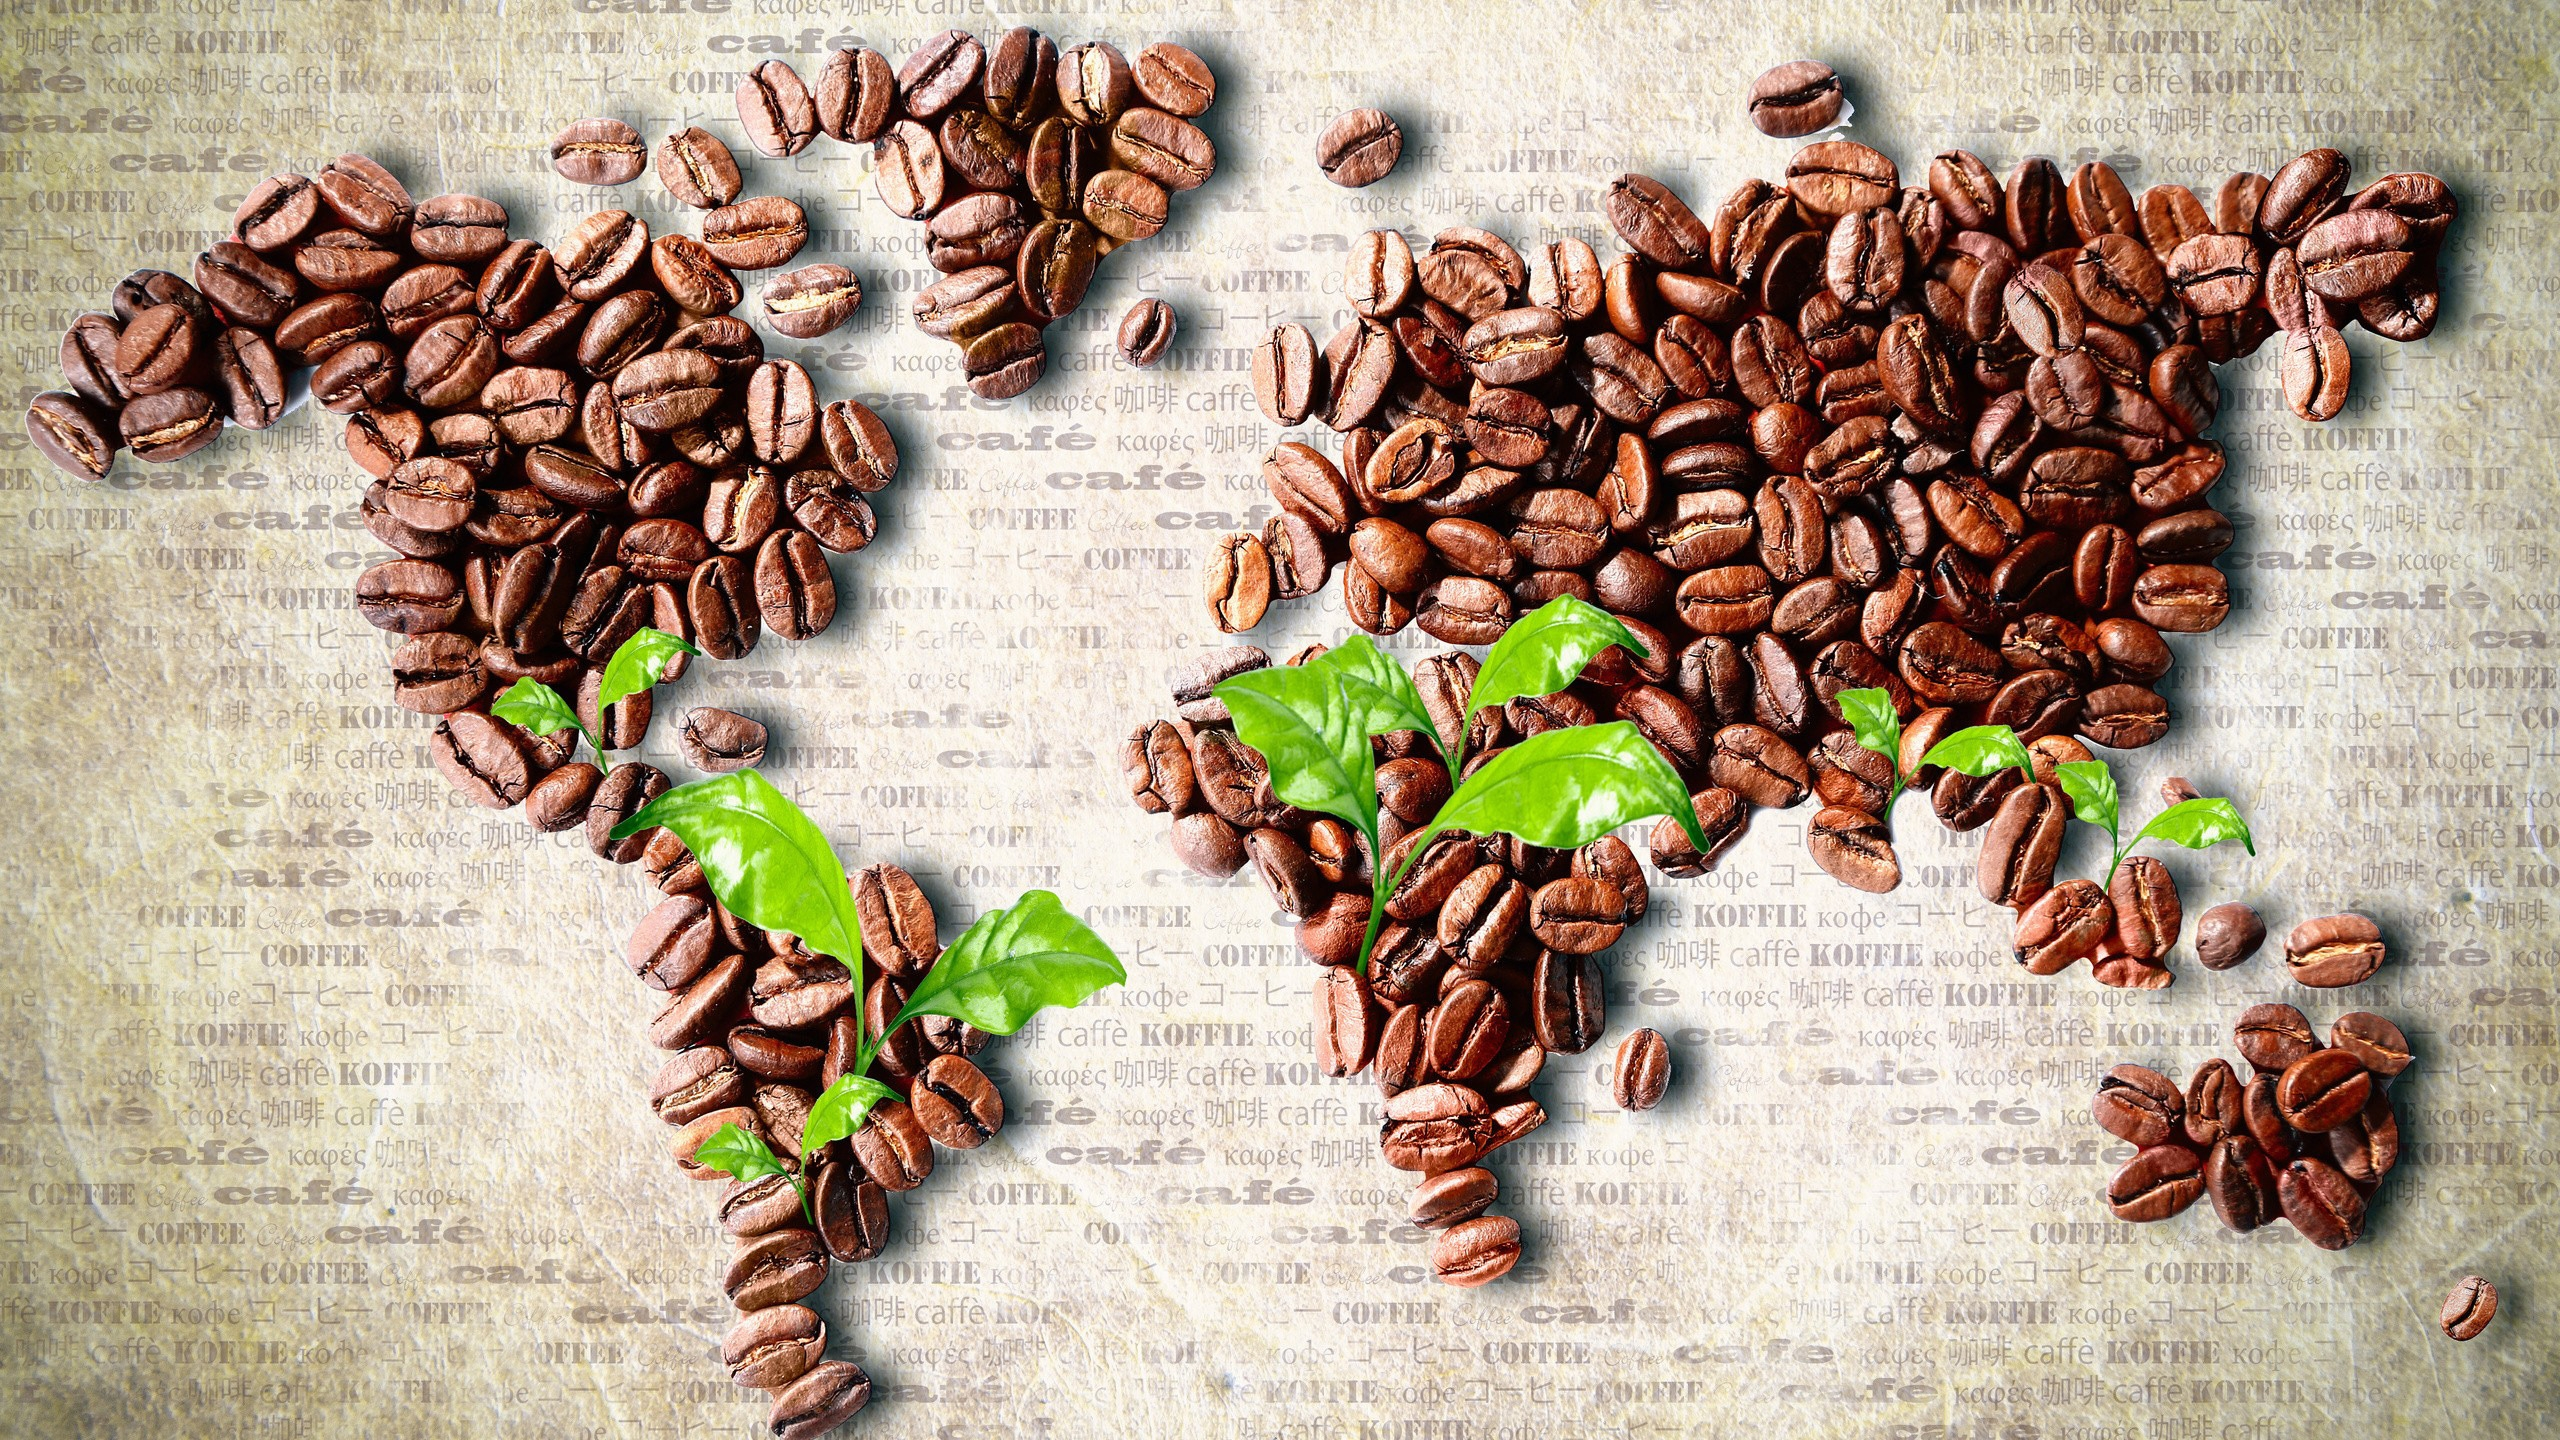 Coffee Beans World Map for 2560x1440 HDTV resolution